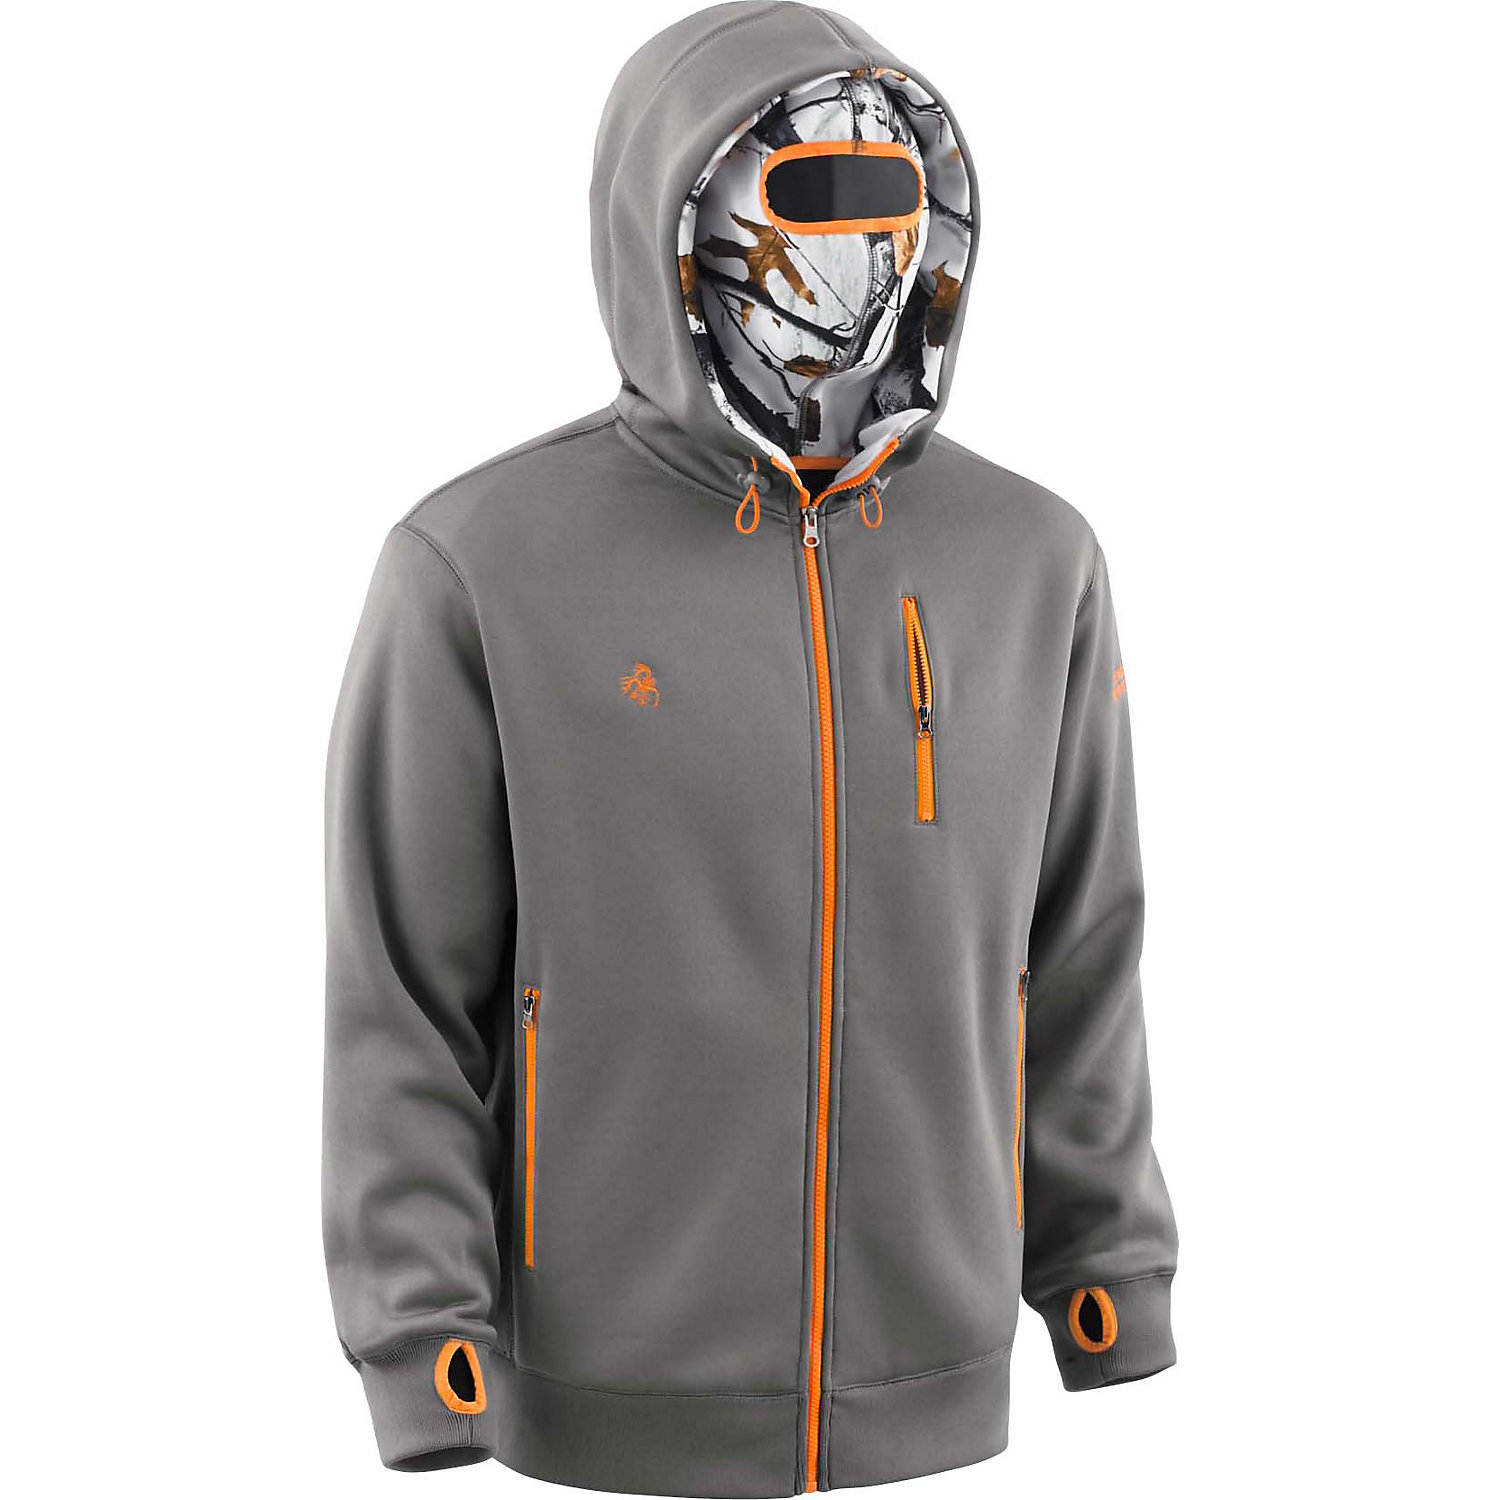 whitetail guys Whitetail hunting from rolling hills through to rugged terrain, this collection offers stability and comfort to any hunt.